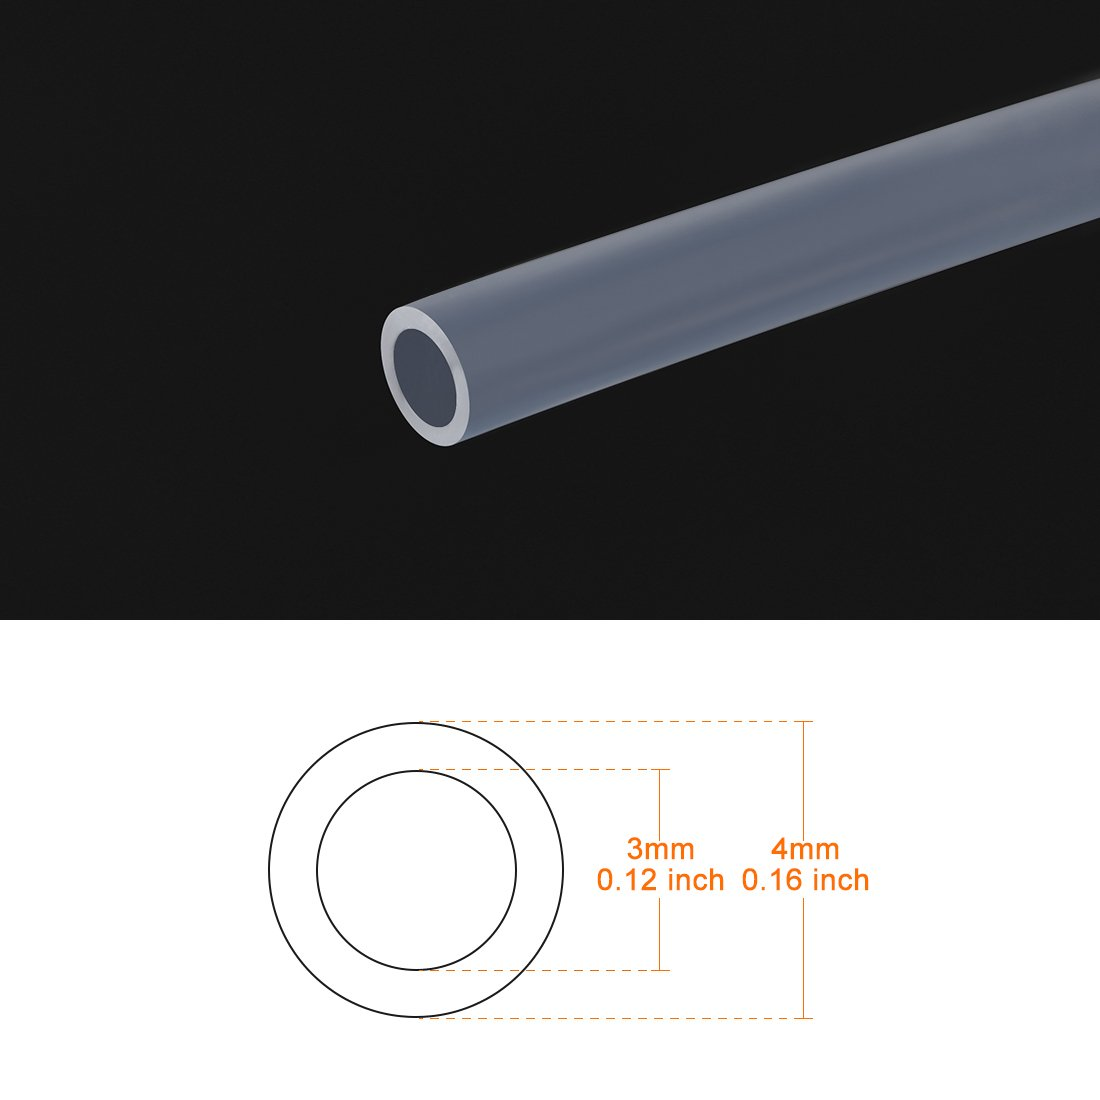 uxcell PTFE Tube Tubing 5 Meter 16.4ft Lengh for 3.0 Filament Pipe 2mm ID 4mm OD for 3D Printer RepRap a18042500ux0163